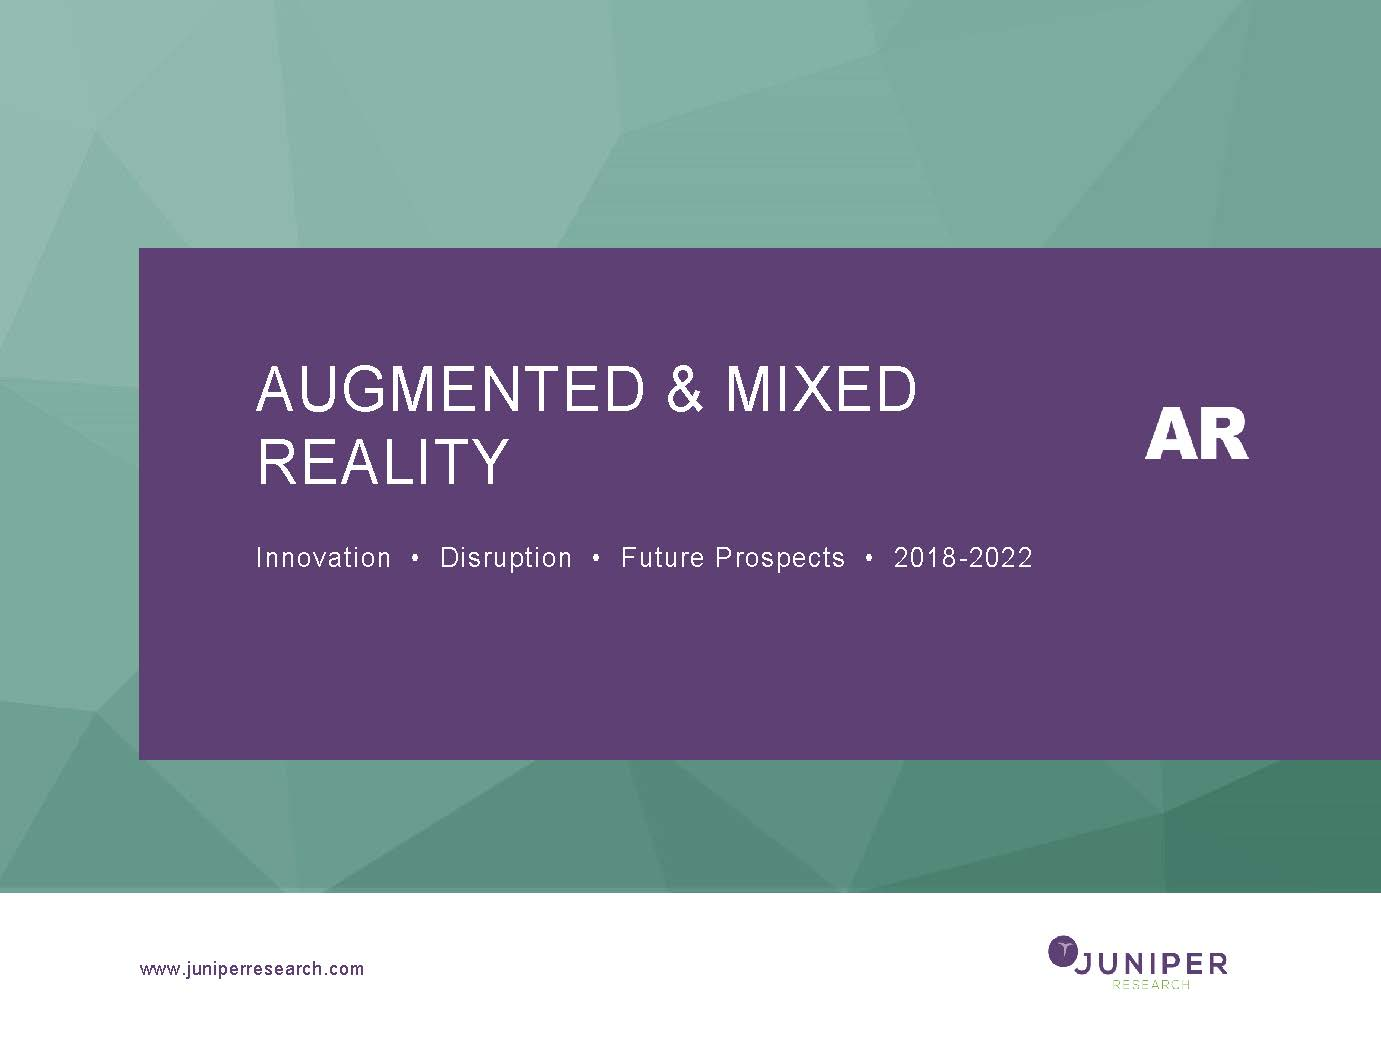 Augmented & Mixed Reality - Deep Dive Strategy & Competition 2018-2022